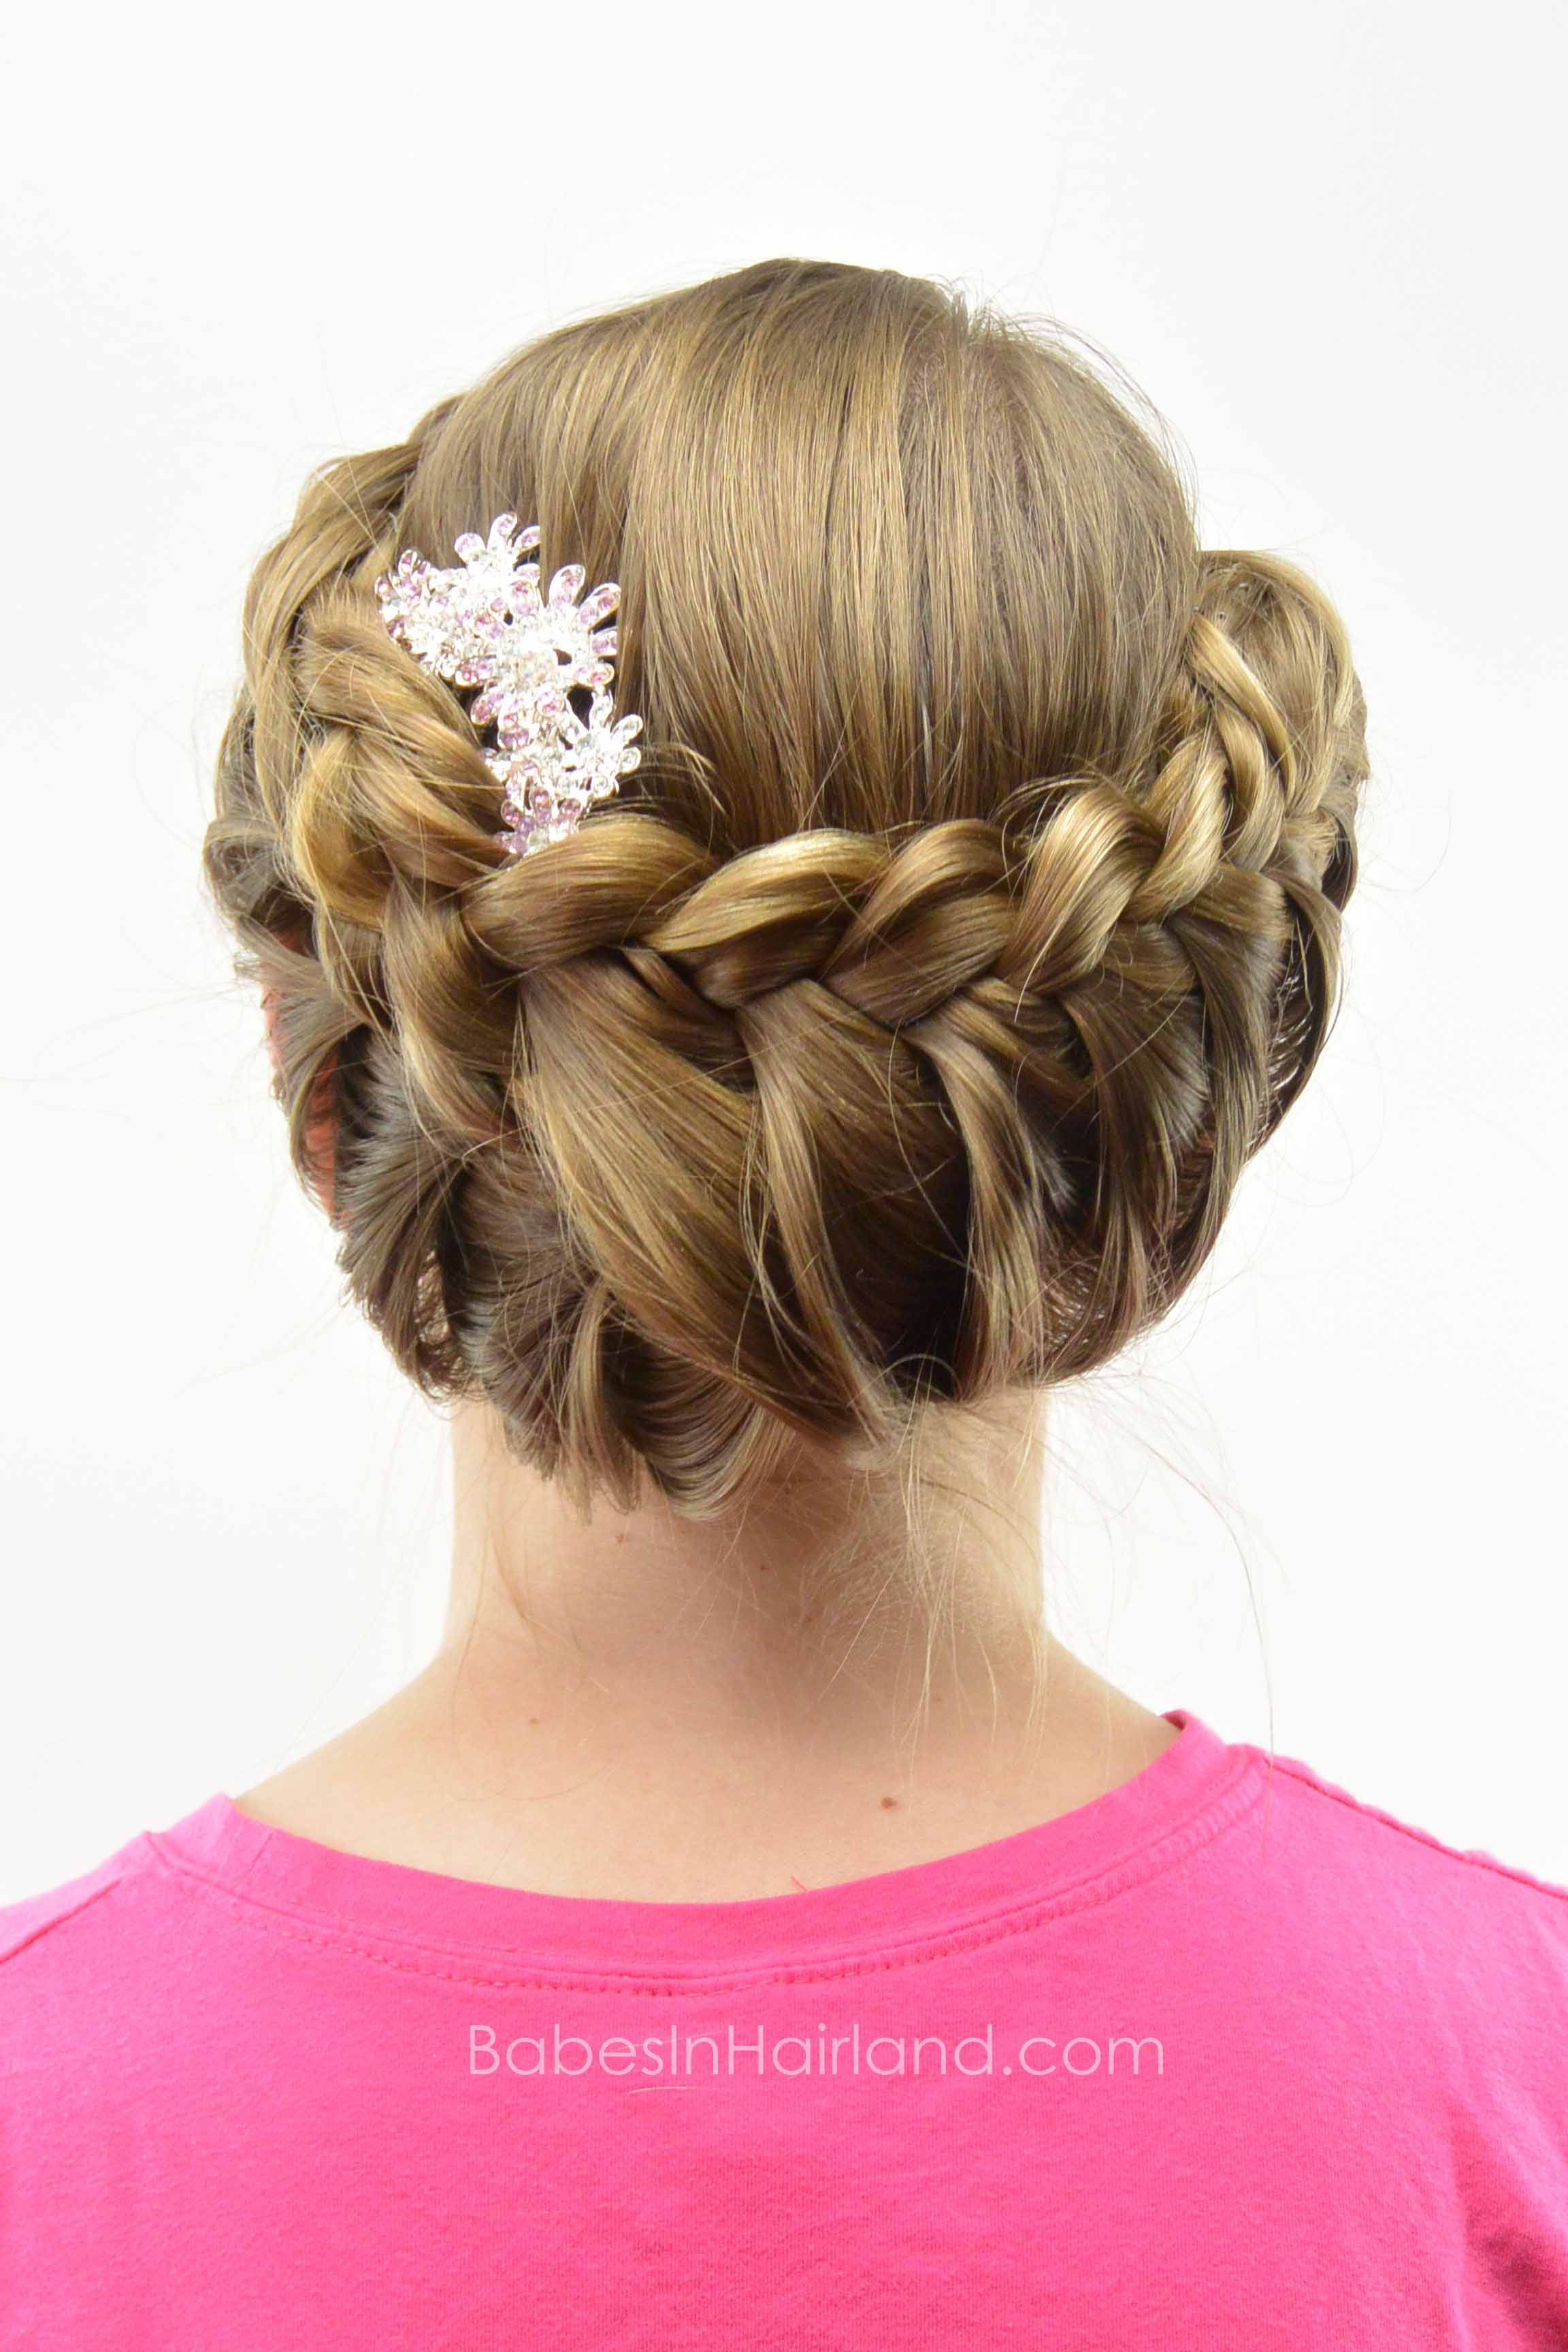 Lace Braid Updo Babes In Hairland